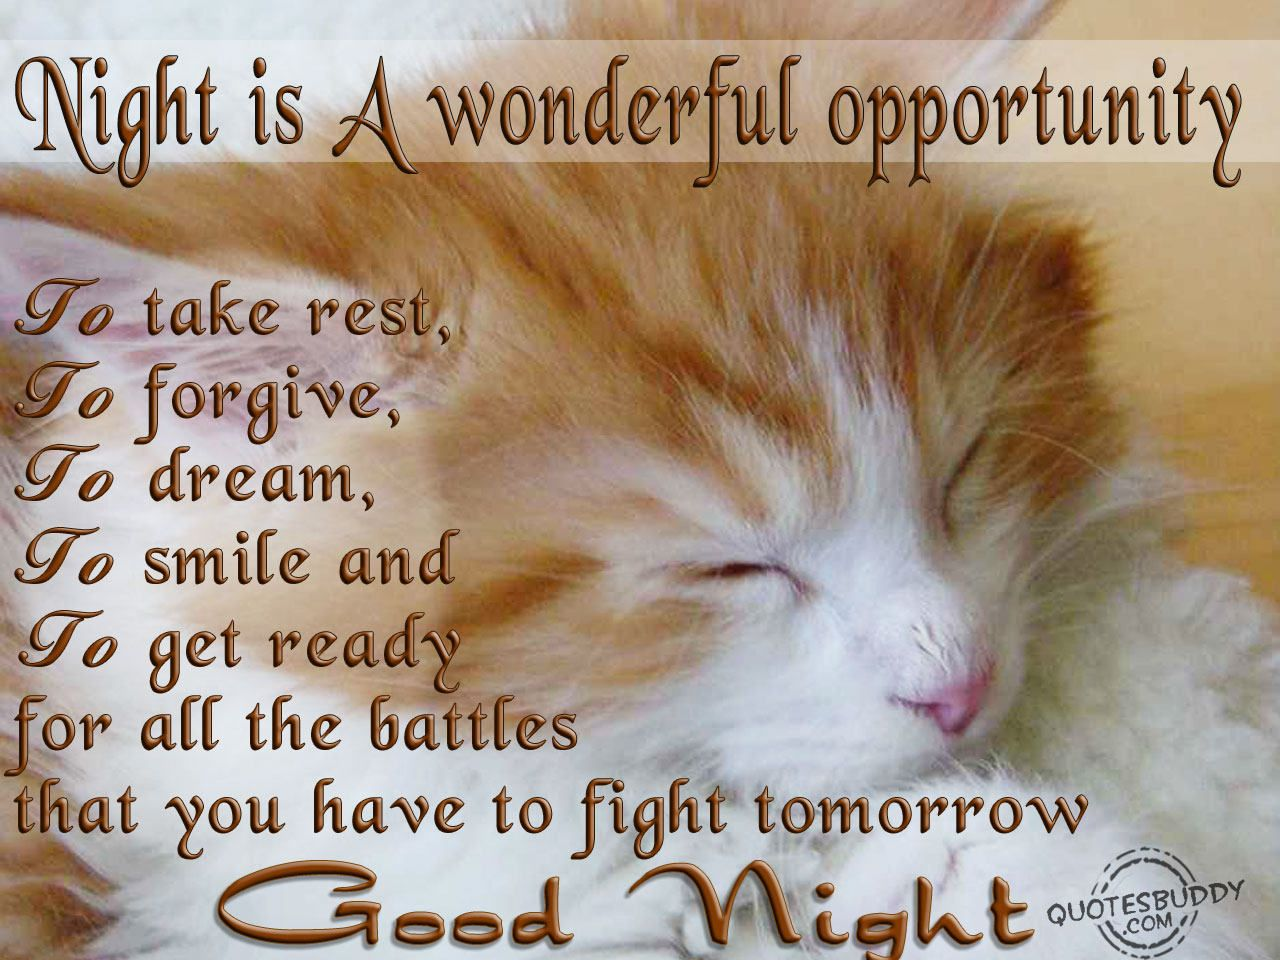 Quotes About Cats Spring Quotes With Cats And Flowers For Fb  Goog Night Quotes